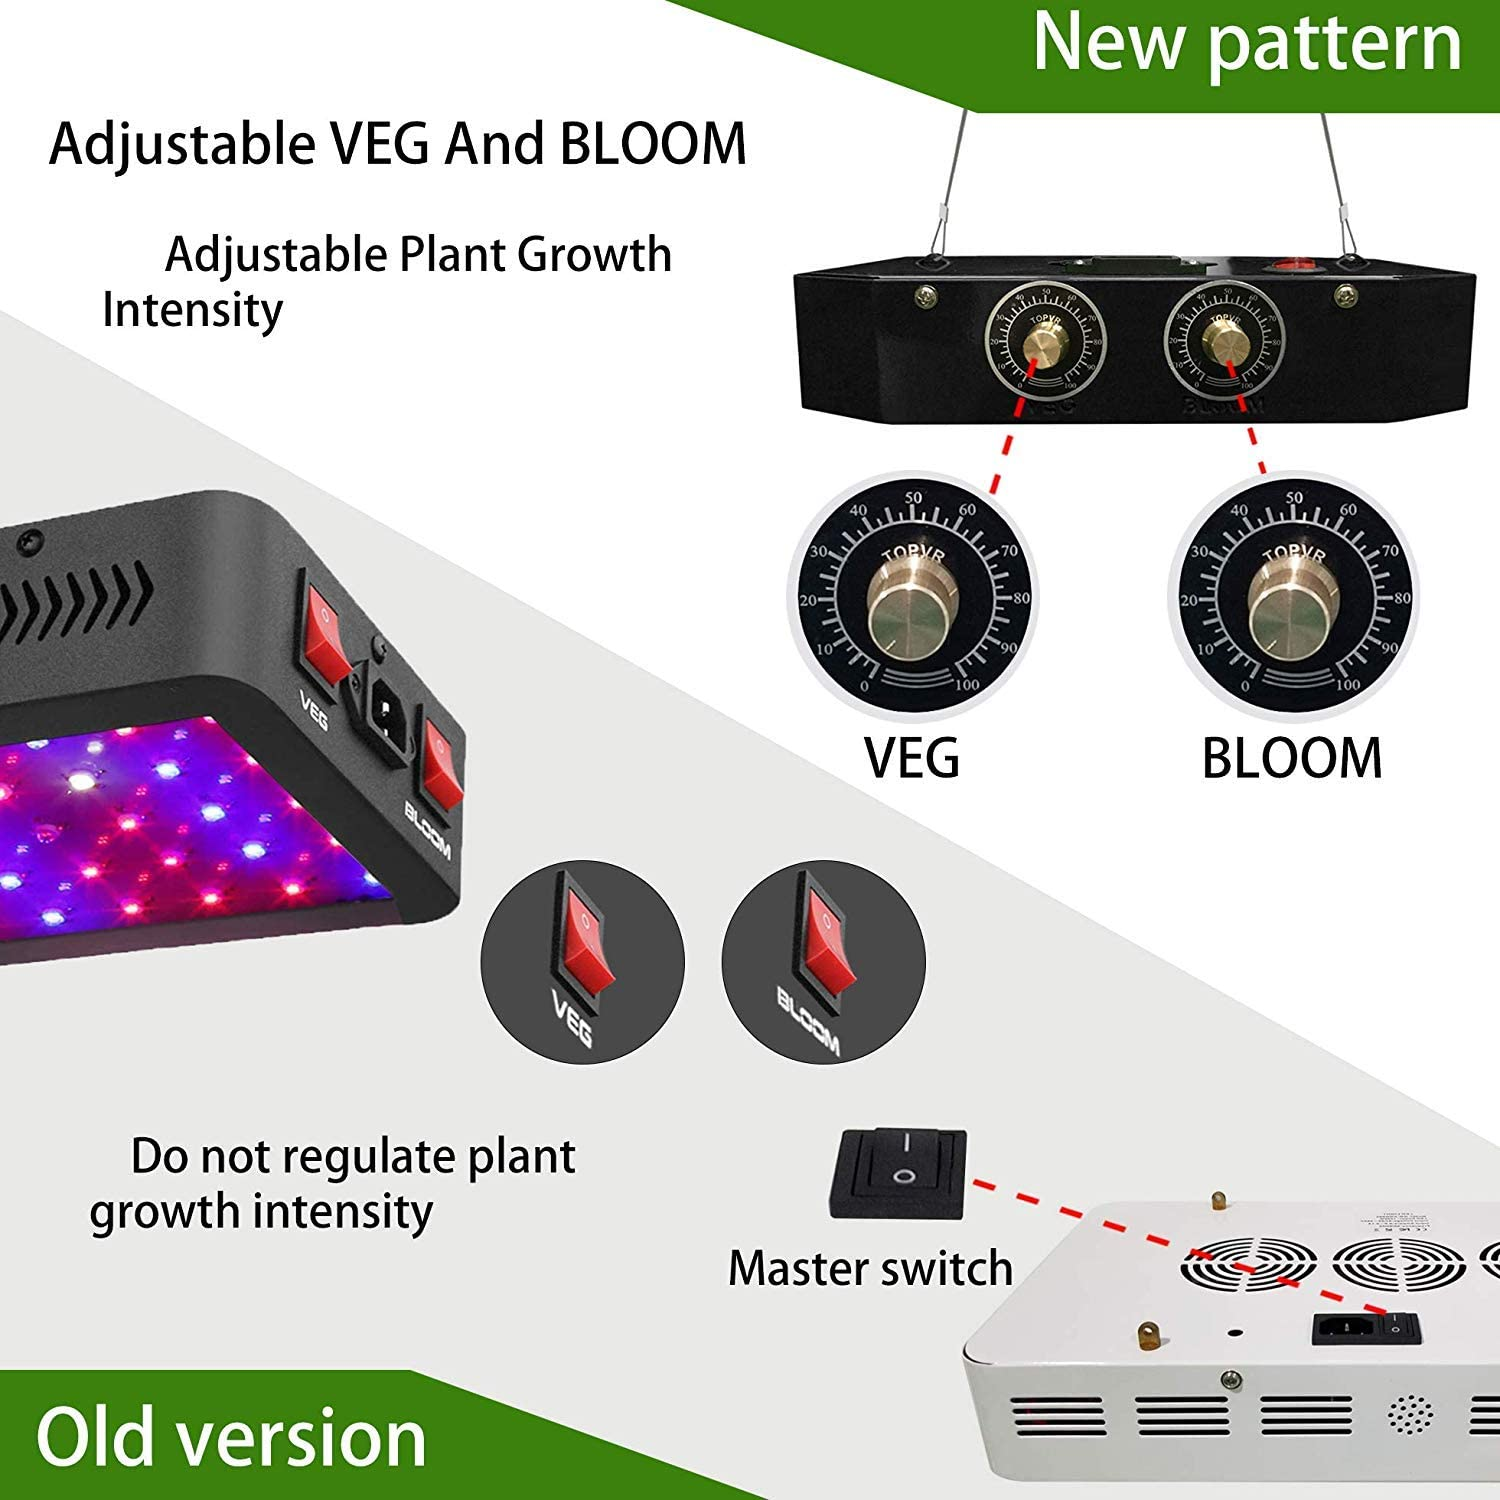 1100W Double Chip LED COB Full Spectrum Knob Switch Plant Lamp is Suitable for Indoor Plant Growth Lamp of Flowers, Vegetables and Other Plants